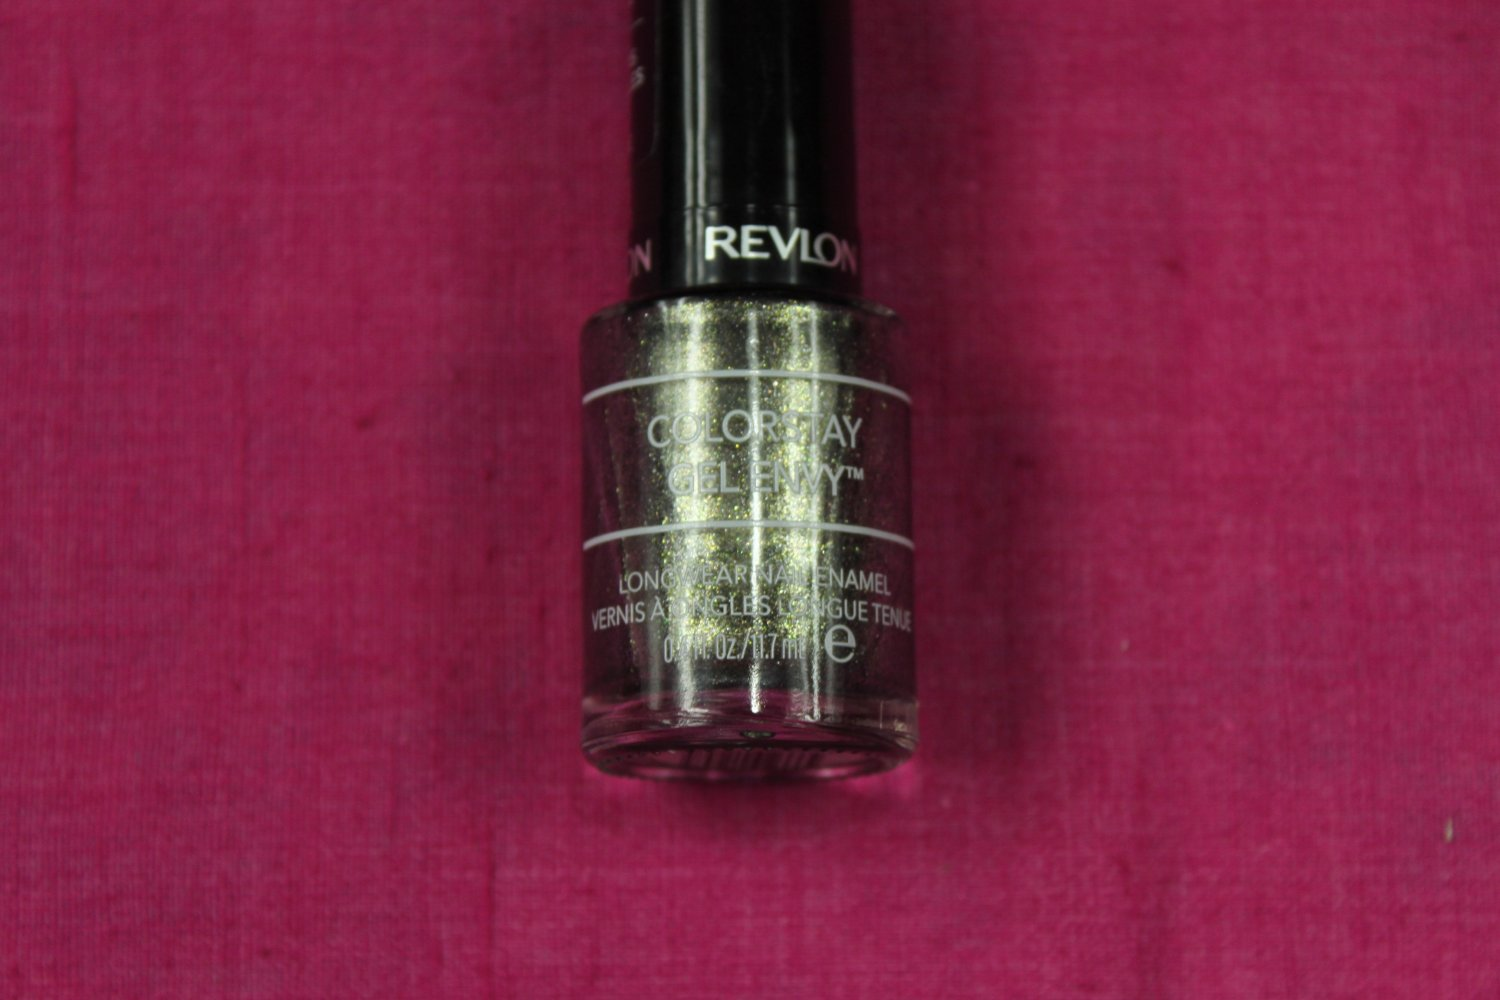 Revlon Colorstay Gel Envy Nail Enamel #515 SMOKE AND MIRRORS Nail Polish